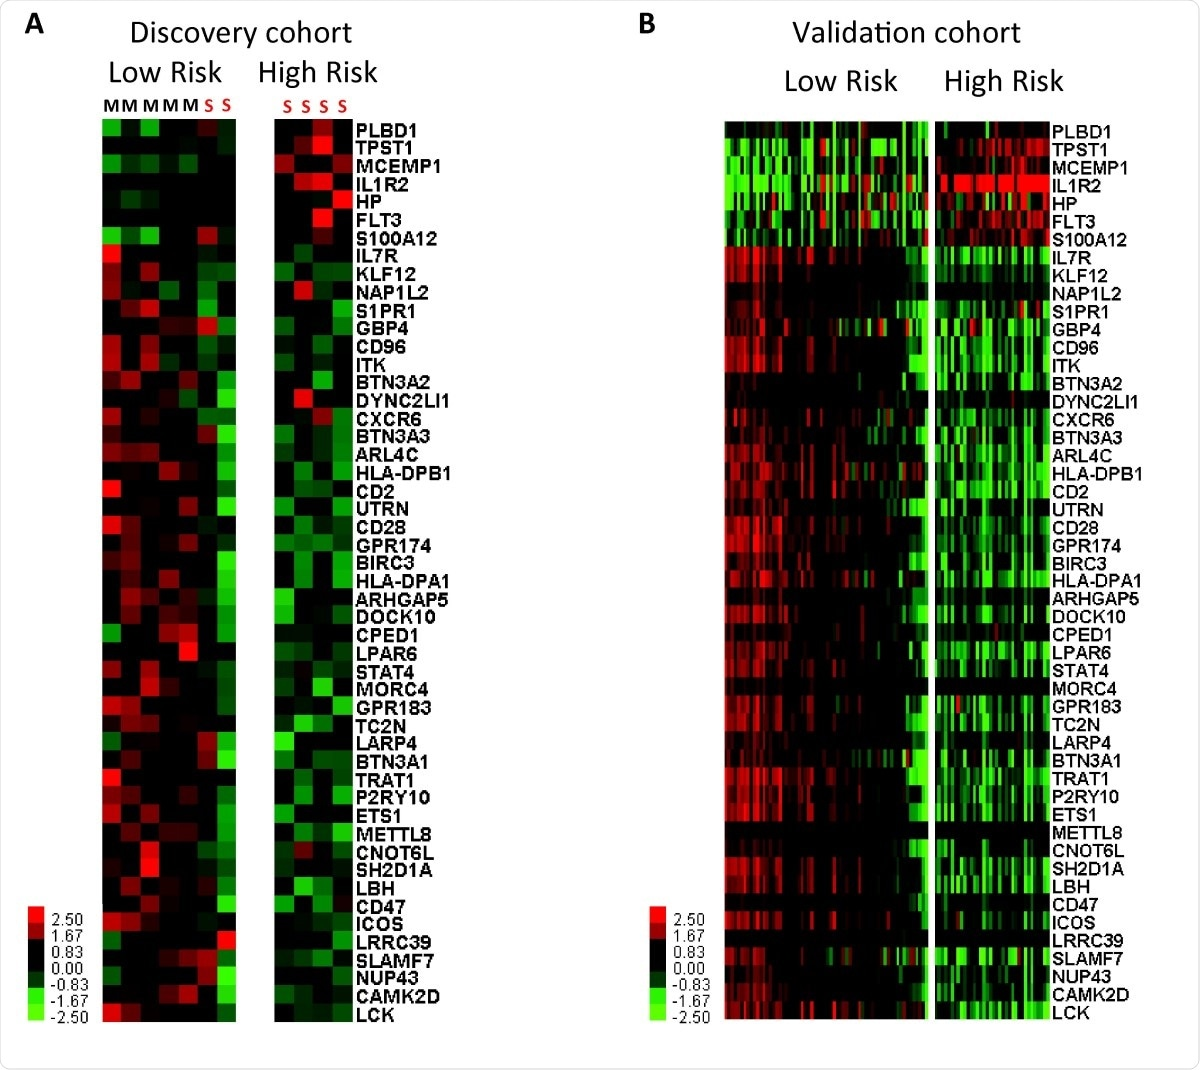 Genomic risk profiles based on the 50-gene signature are predictive of poor outcomes in SARSCoV- 2. Clustering of SARS-CoV-2 infected individuals based on genomic risk profiles (high vs low) derived from the 50-gene signature using SAMS in discovery (A) and validation cohorts (B). Every column represents a subject and every row represents a gene. Log-based two color scale is shown next to heatmaps; red denotes increase expression over the geometric mean of samples and green, decrease.